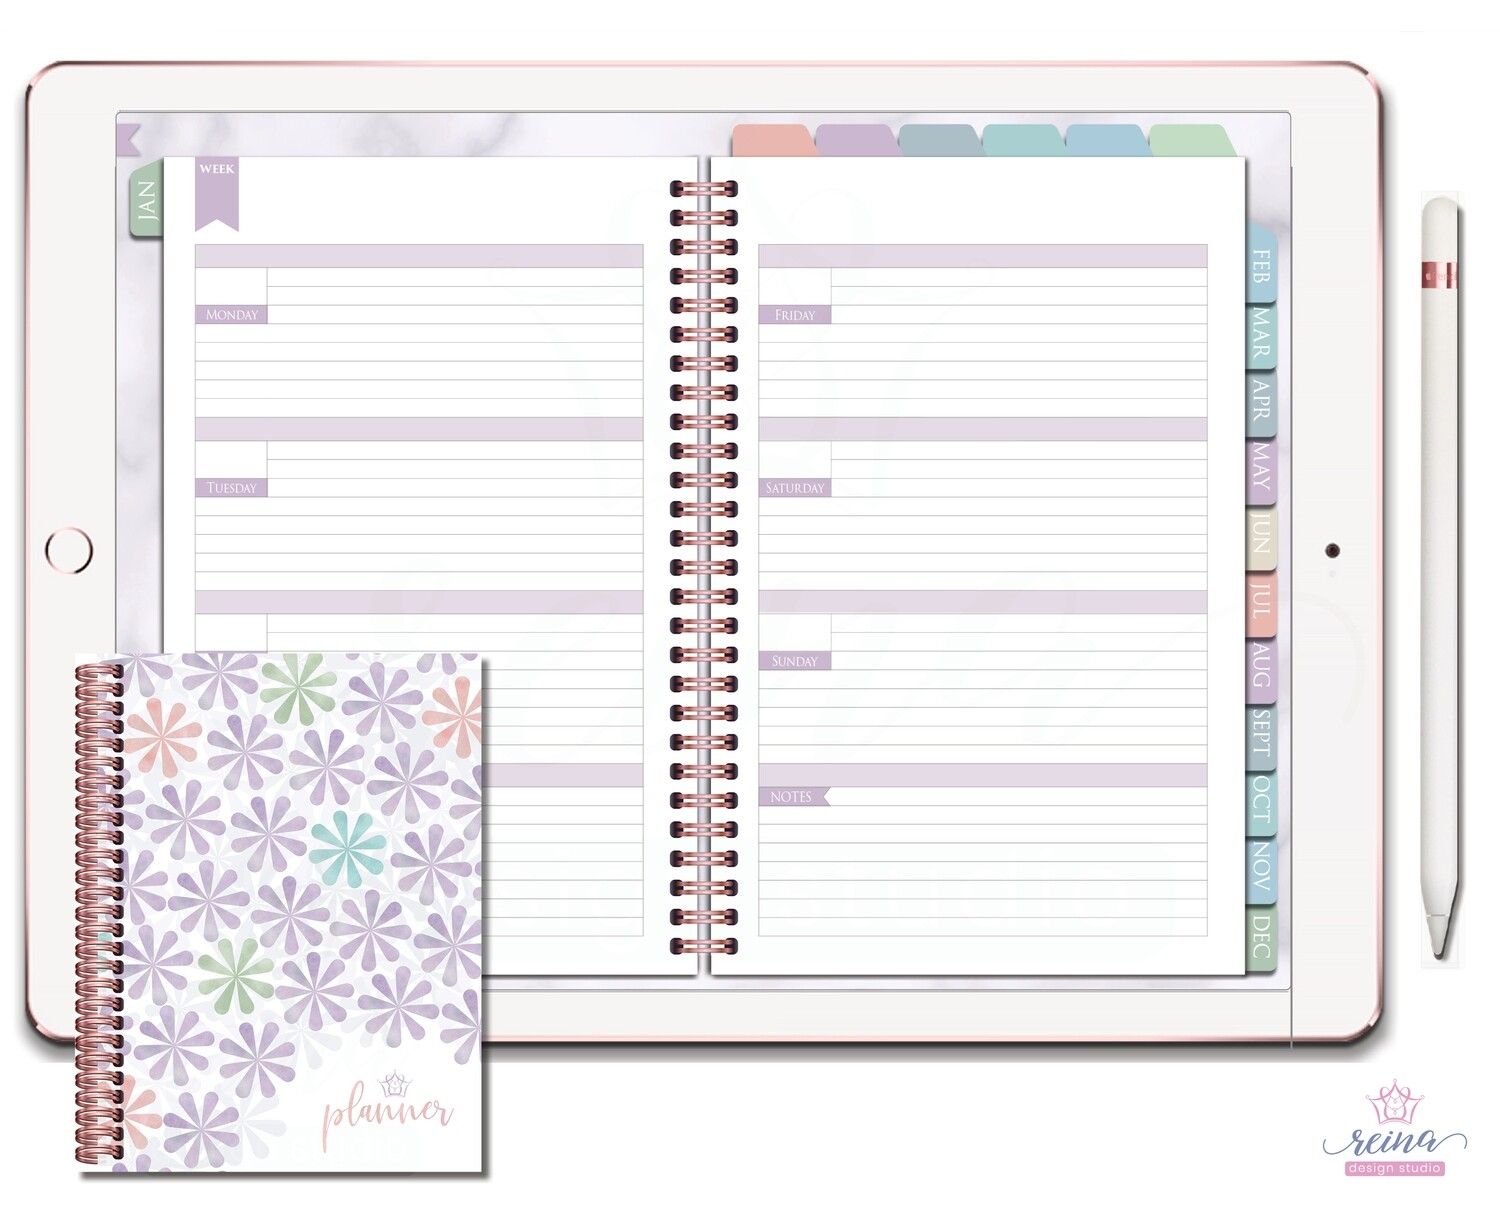 Undated Deluxe Digital Planner | Horizontal, Rose Gold, Sea Breeze